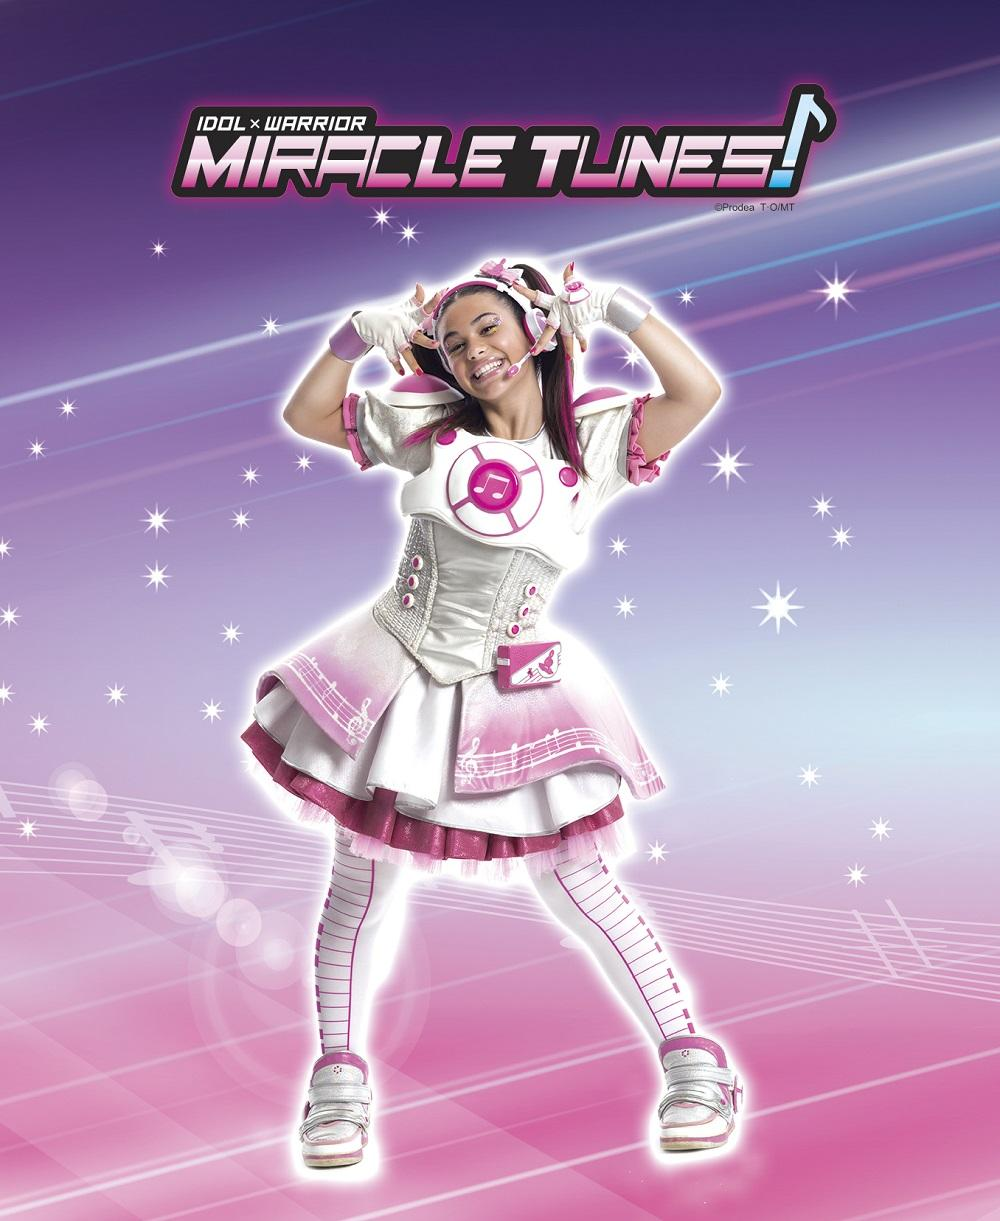 Idol Warrior Miracle Tunes Wallpapers Wallpaper Cave